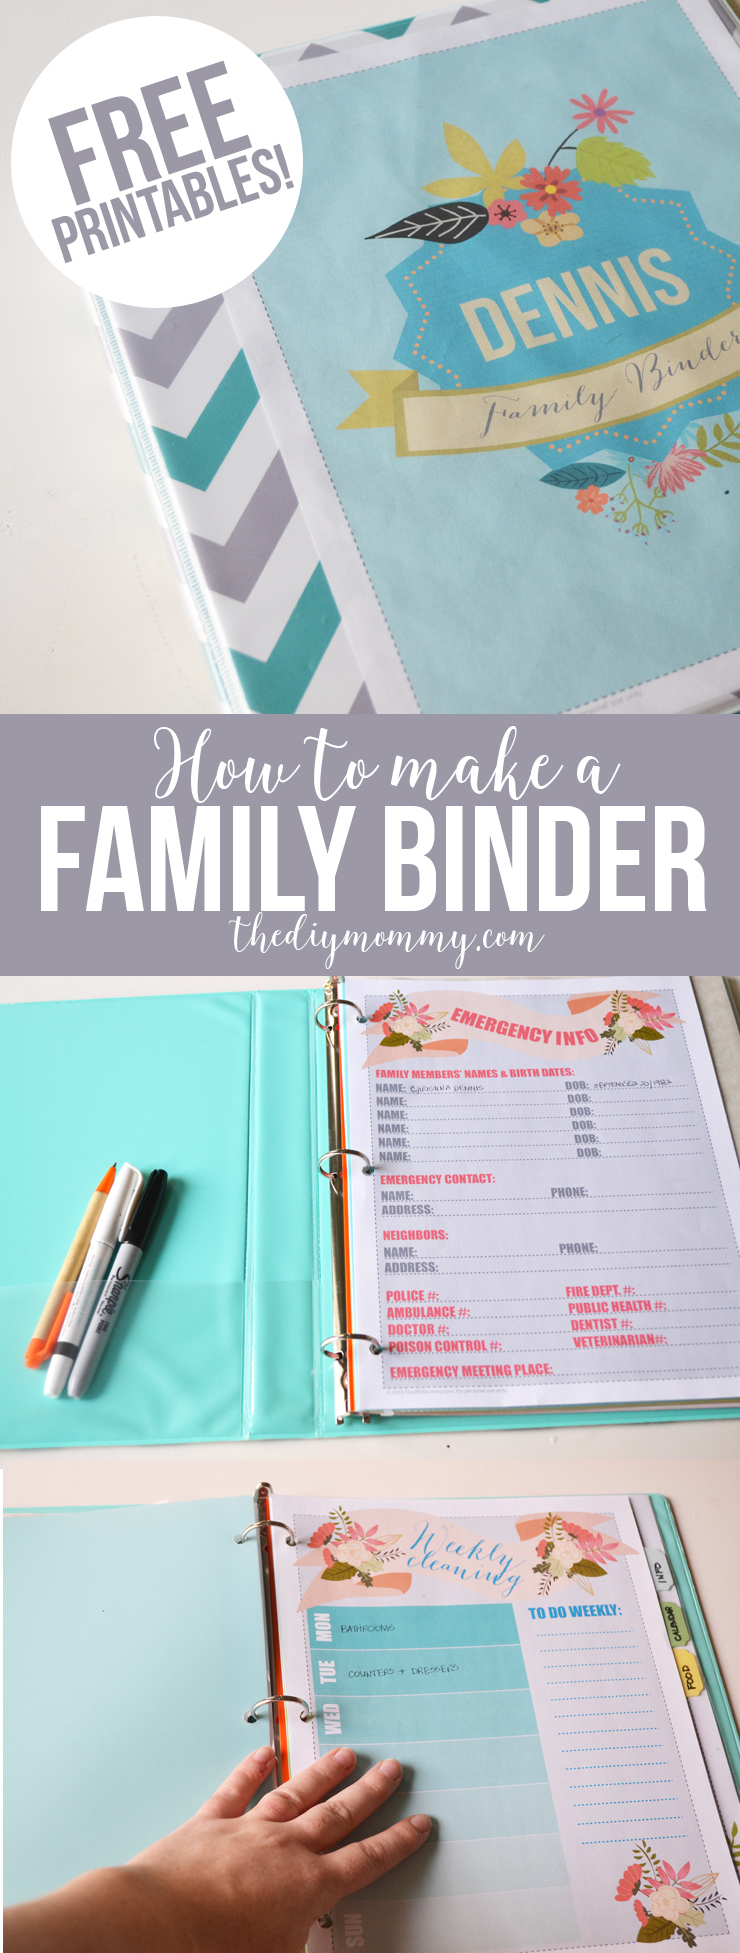 How to make a family binder: useful tips, links, and beautiful FREE printables!